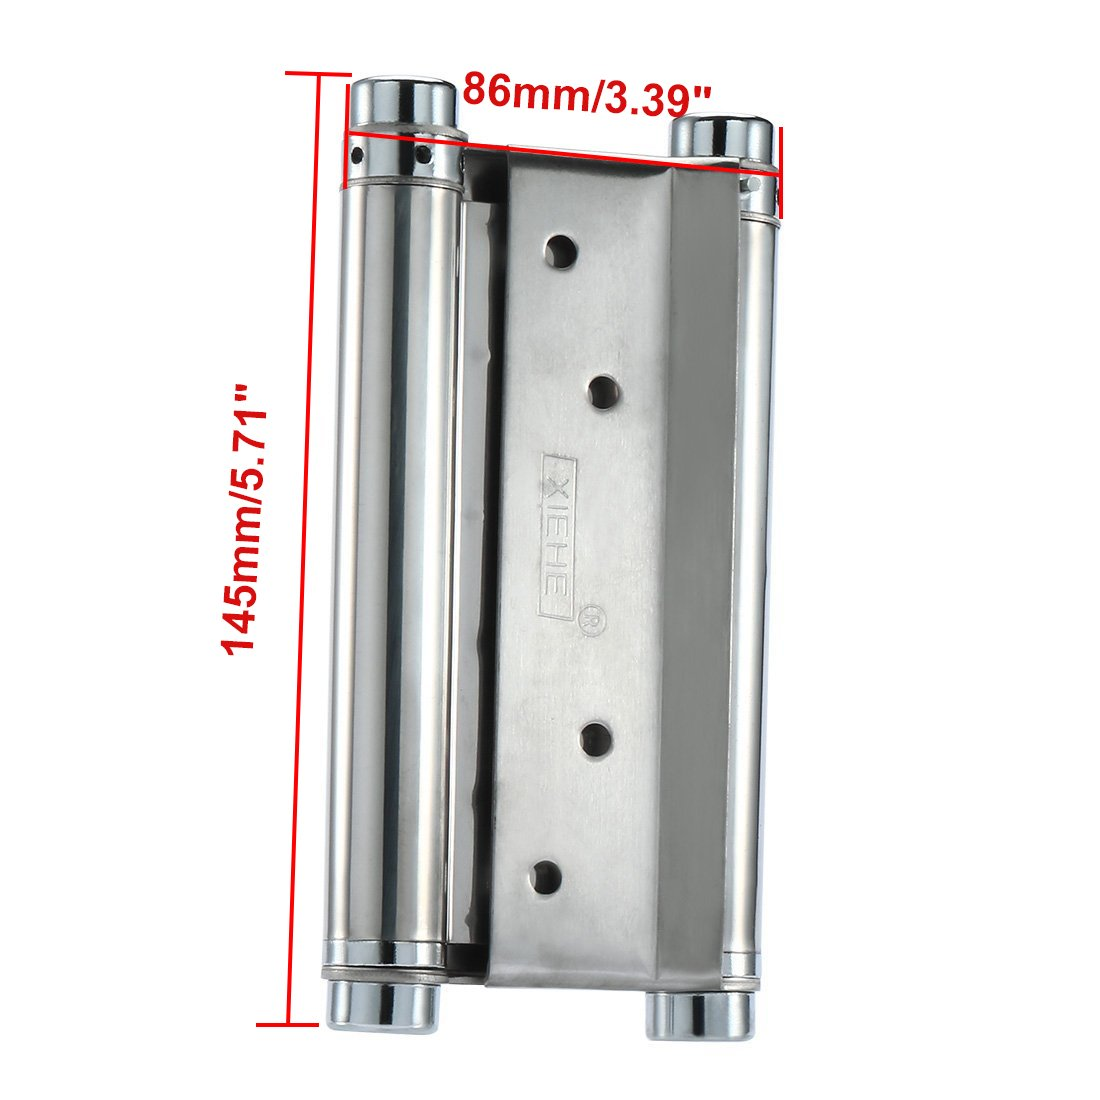 ZXHAO Cafe Saloon Door Swing Self Closing Double Action Spring Hinge 2pcs (5 inch) by ZXHAO (Image #2)